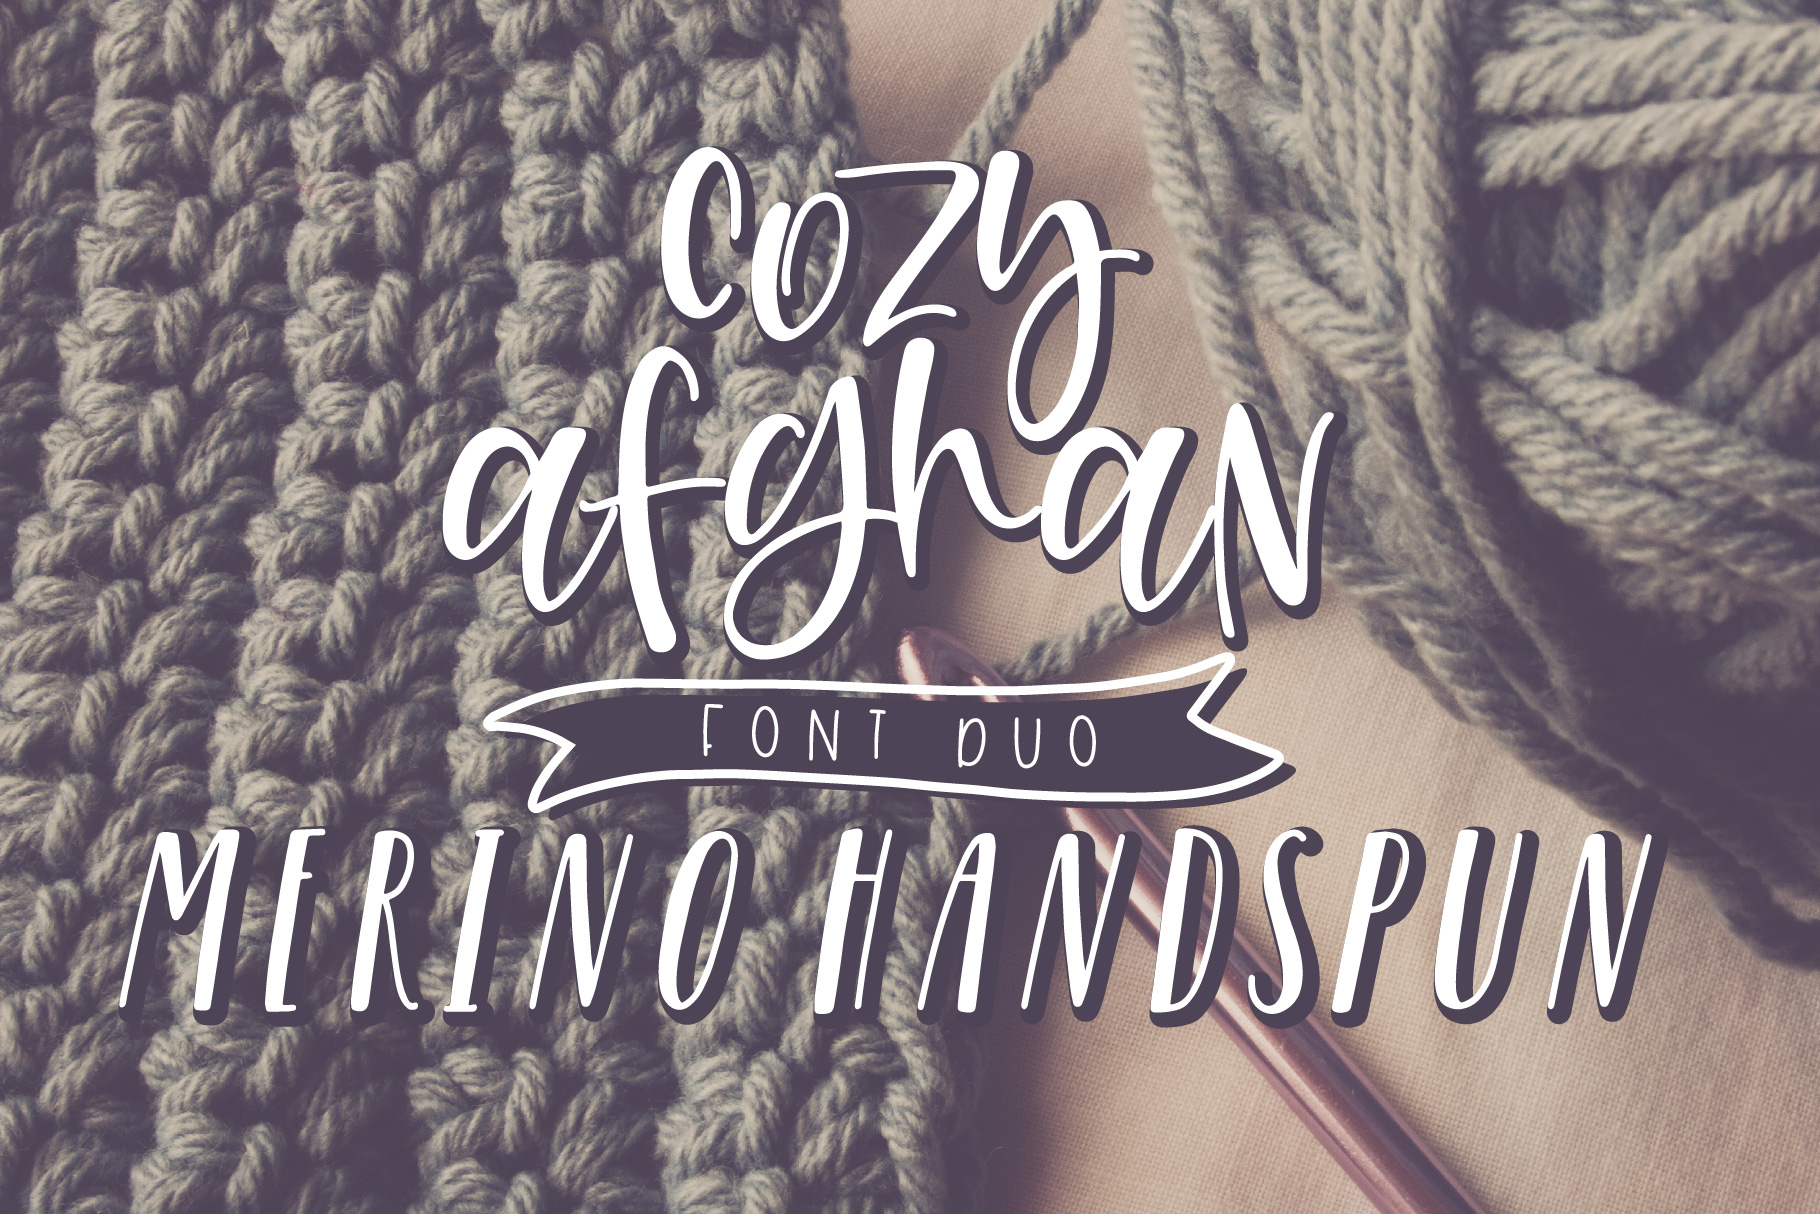 Cozy Afghan Font Duo example image 1